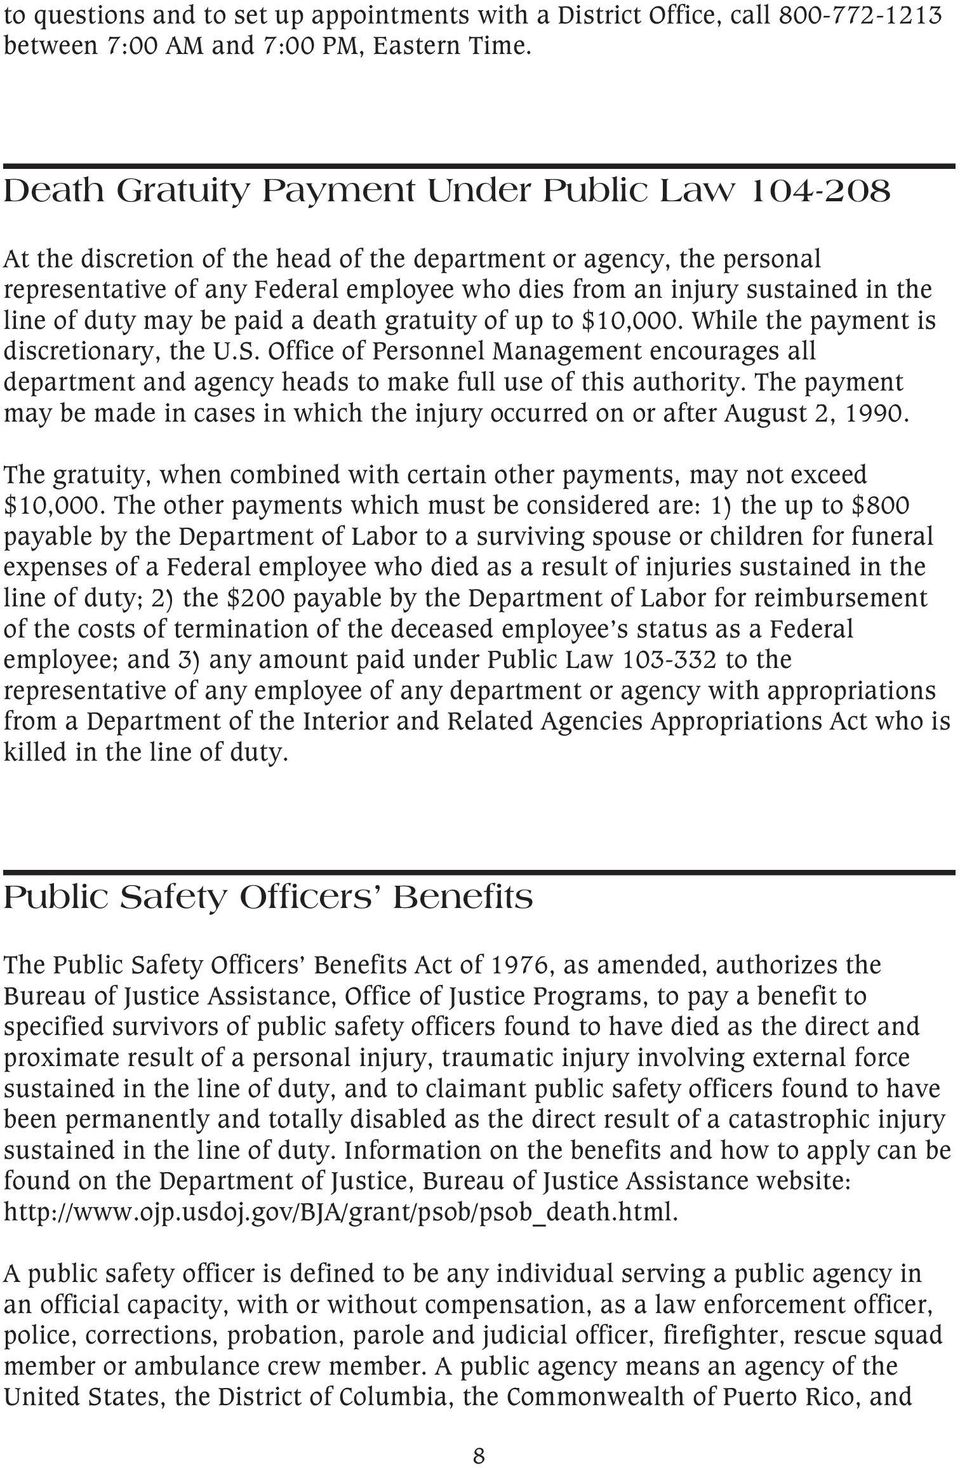 line of duty may be paid a death gratuity of up to $10,000. While the payment is discretionary, the U.S.